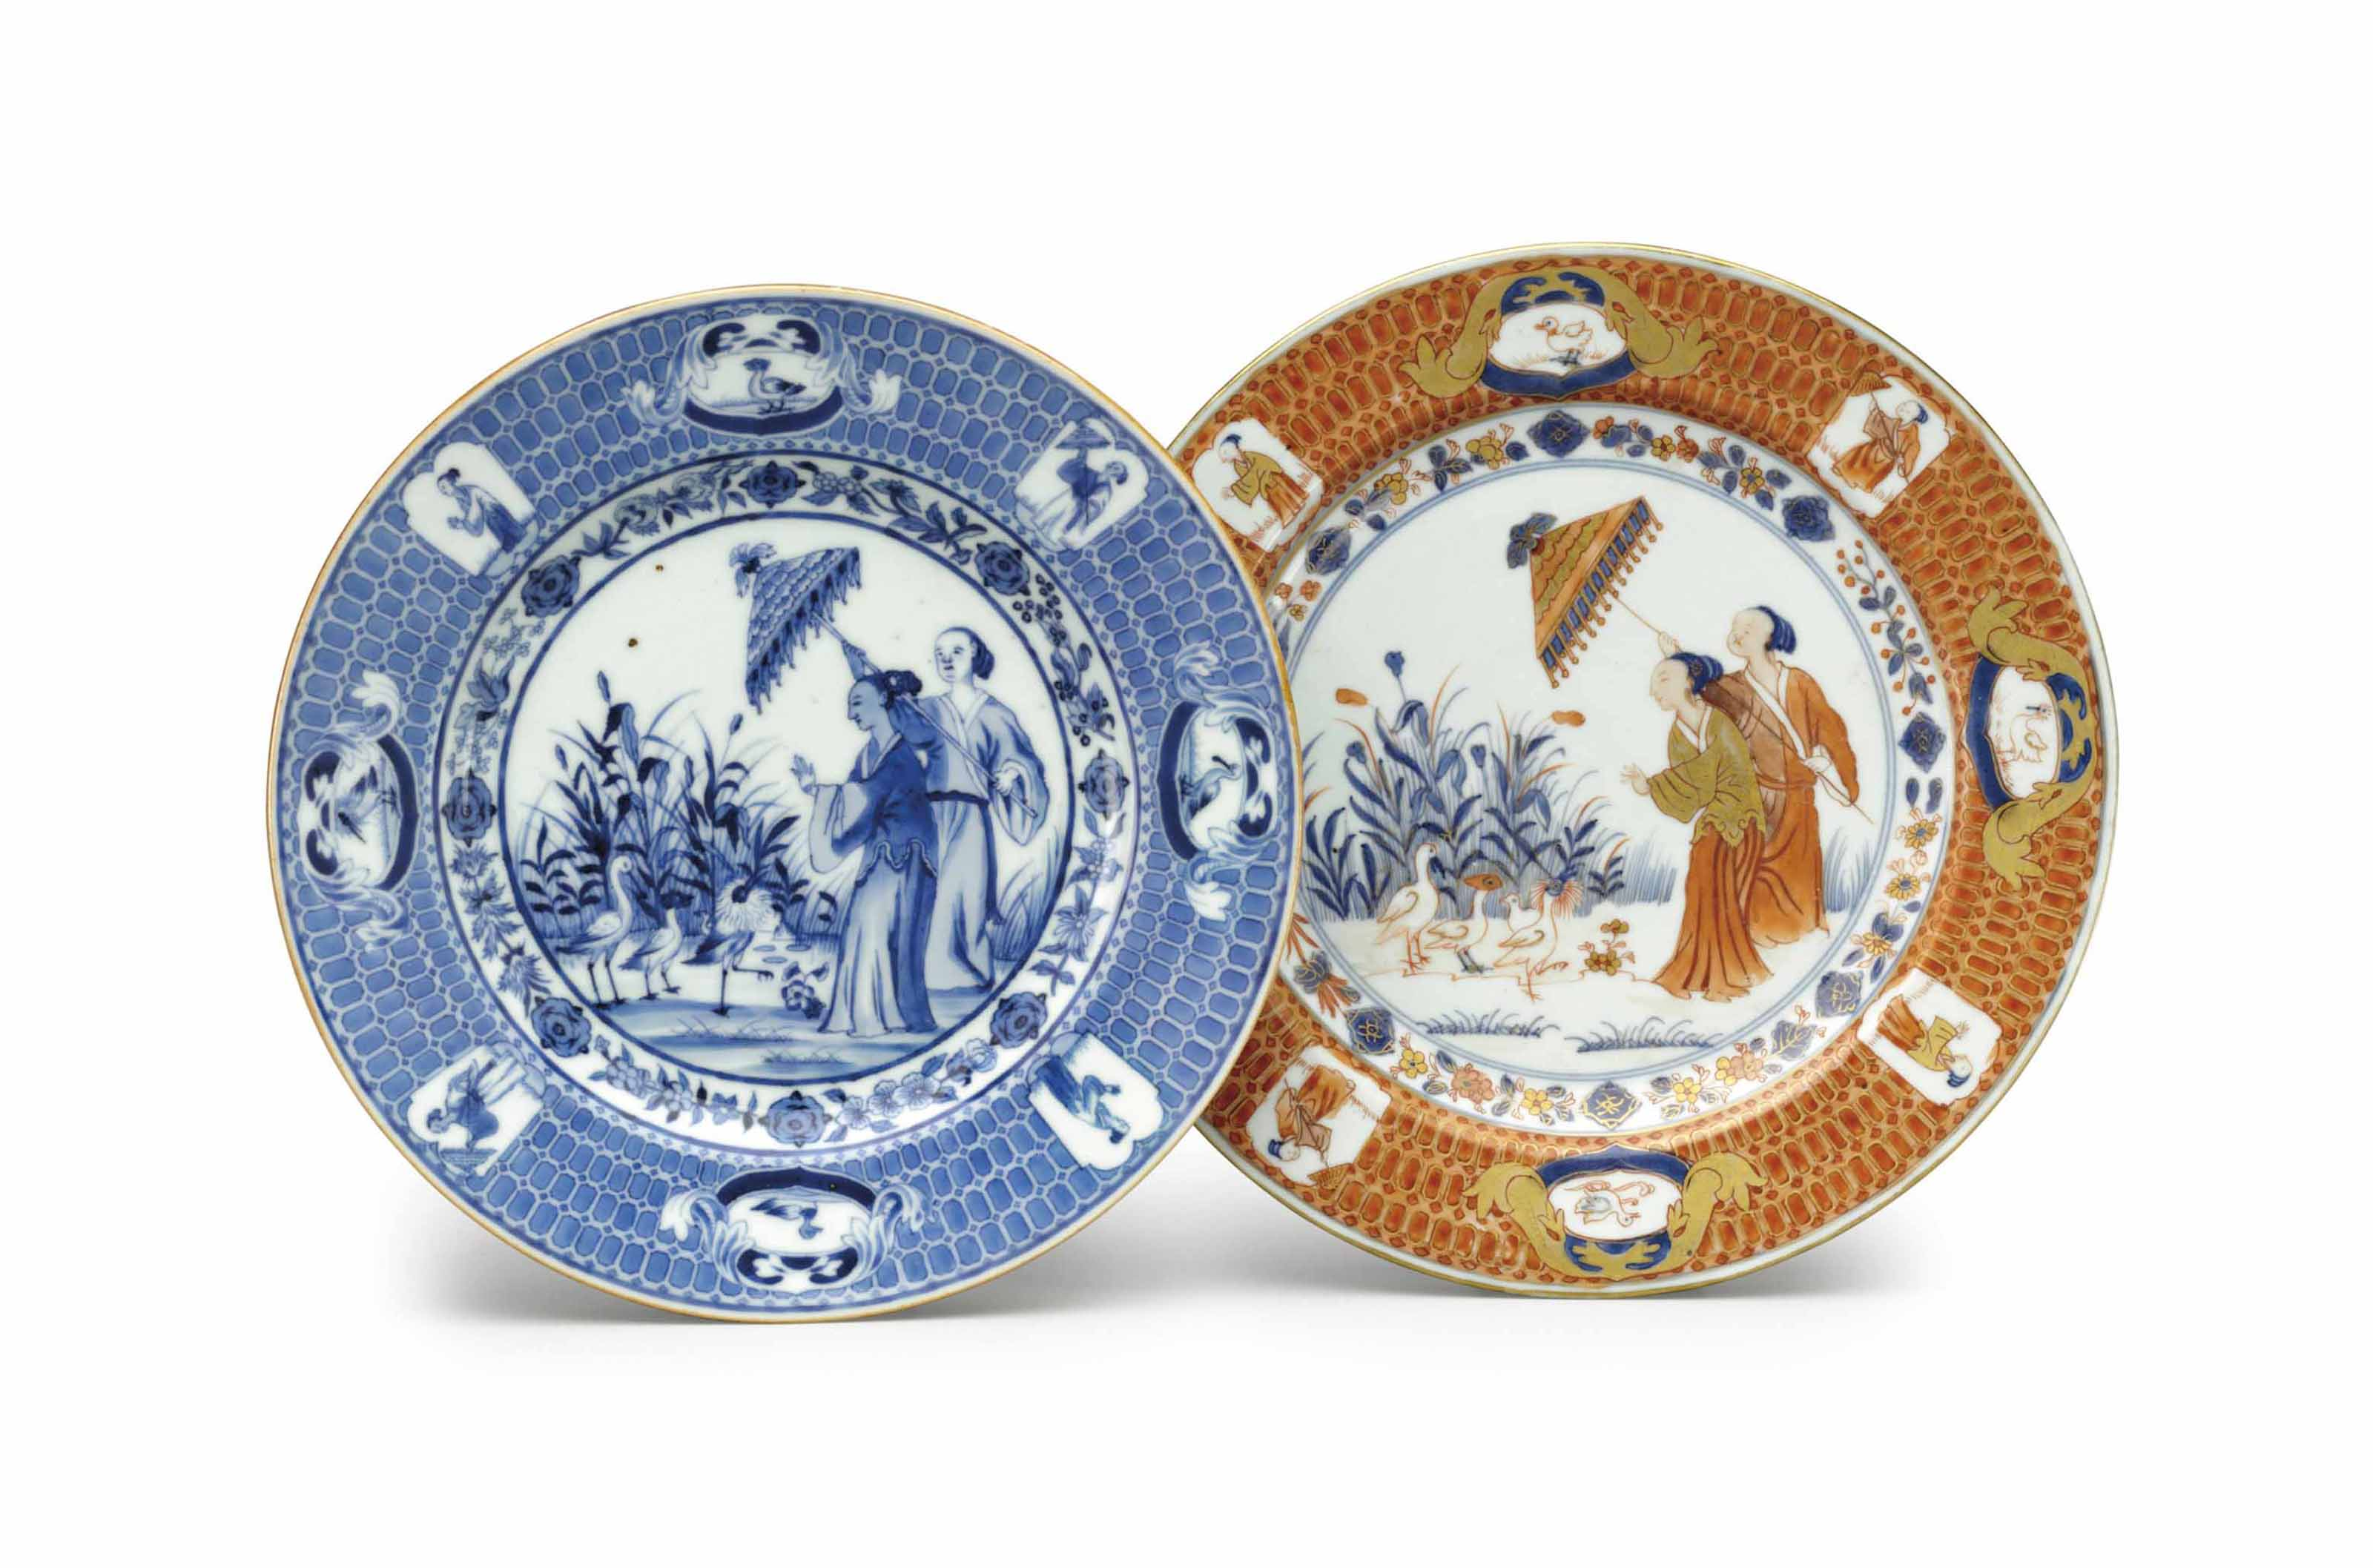 A FAMILLE ROSE PRONK 'DOCTORS' SAUCER DISH